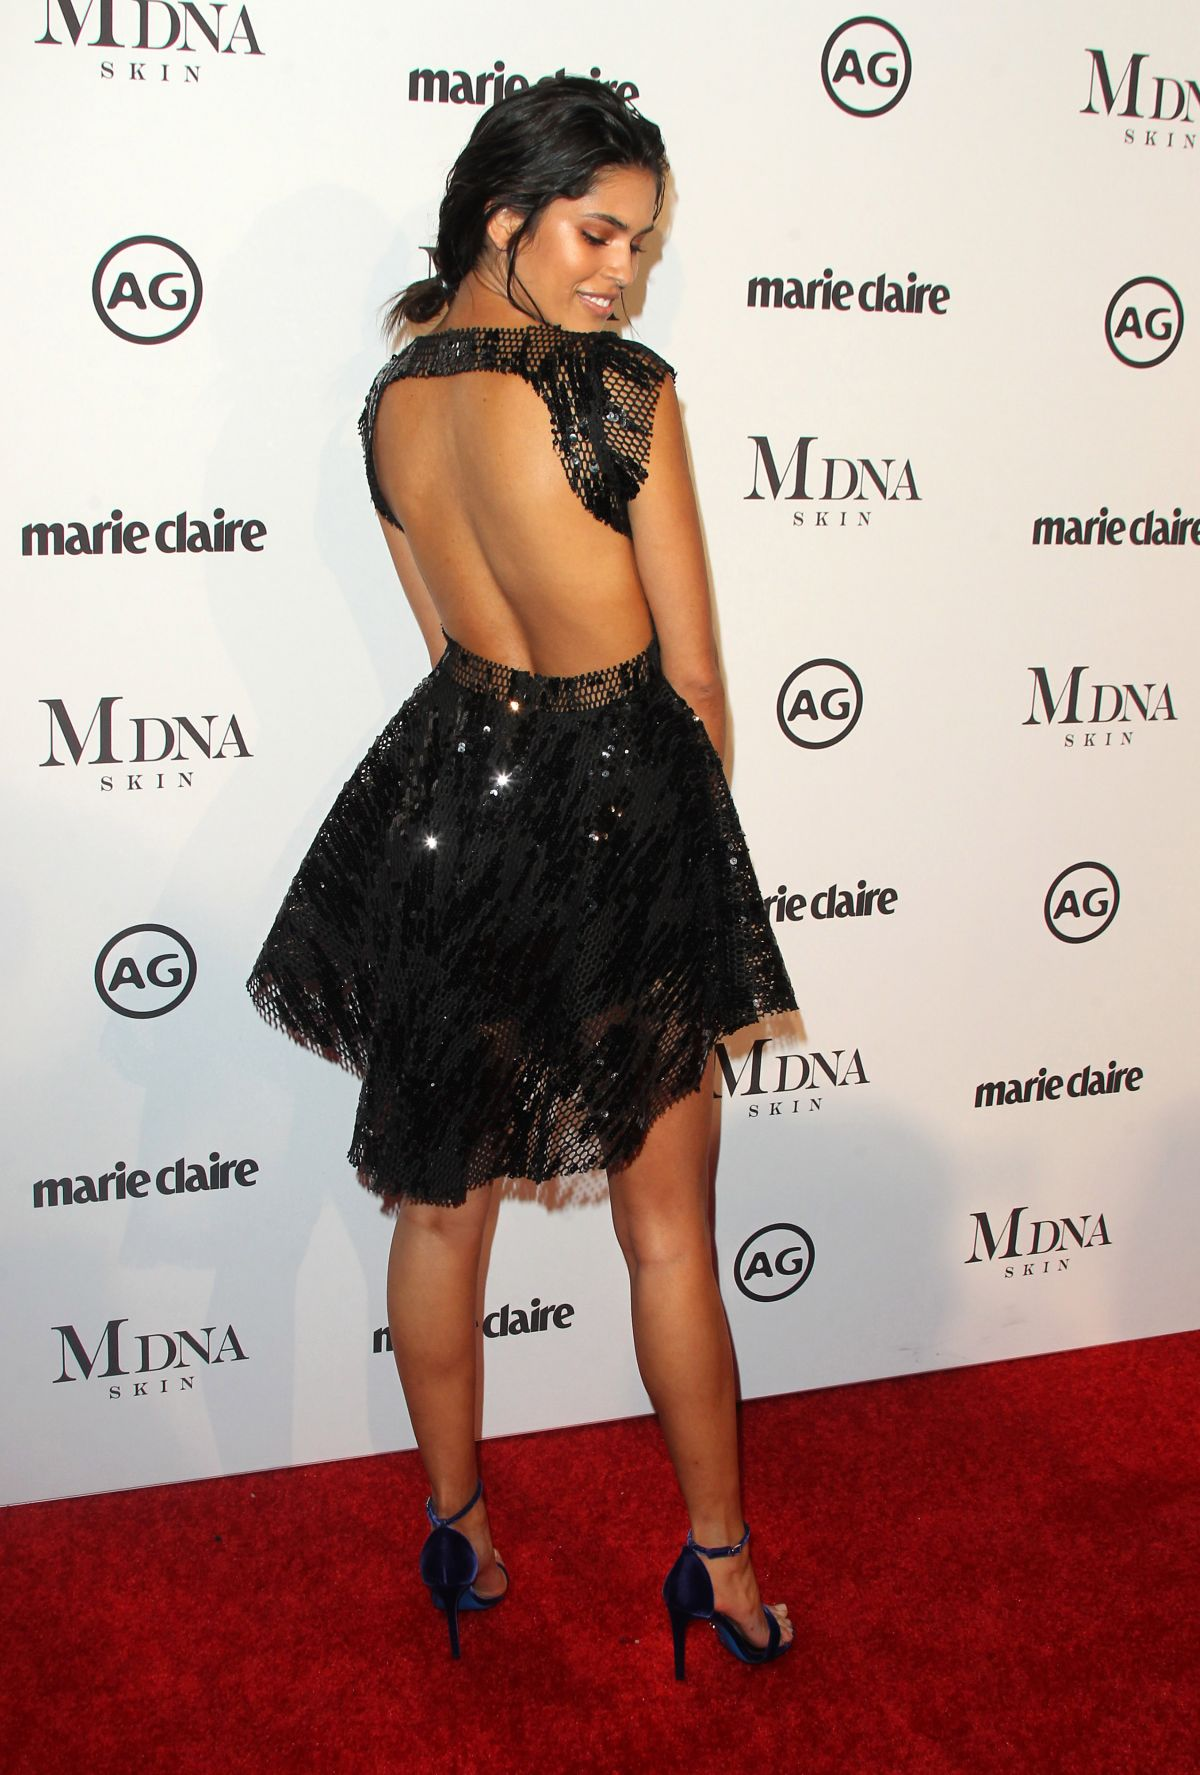 Juliana Herz At Marie Claire Image Makers Awards, Arrivals, Los Angeles